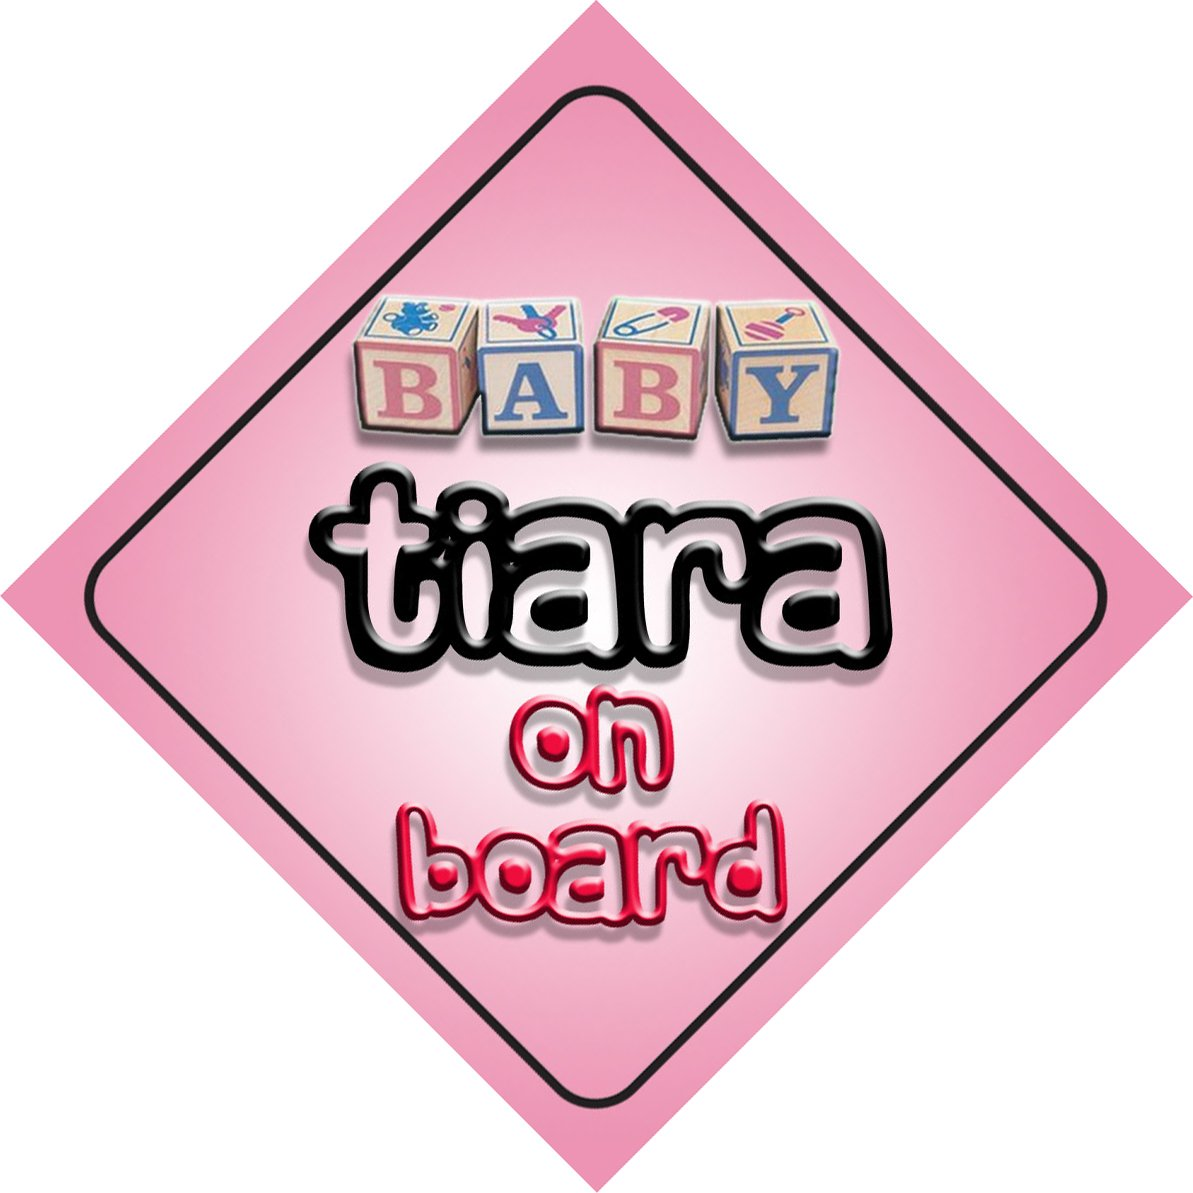 Baby Girl Tiara on board novelty car sign gift / present for new child / newborn baby Quality Goods Ltd